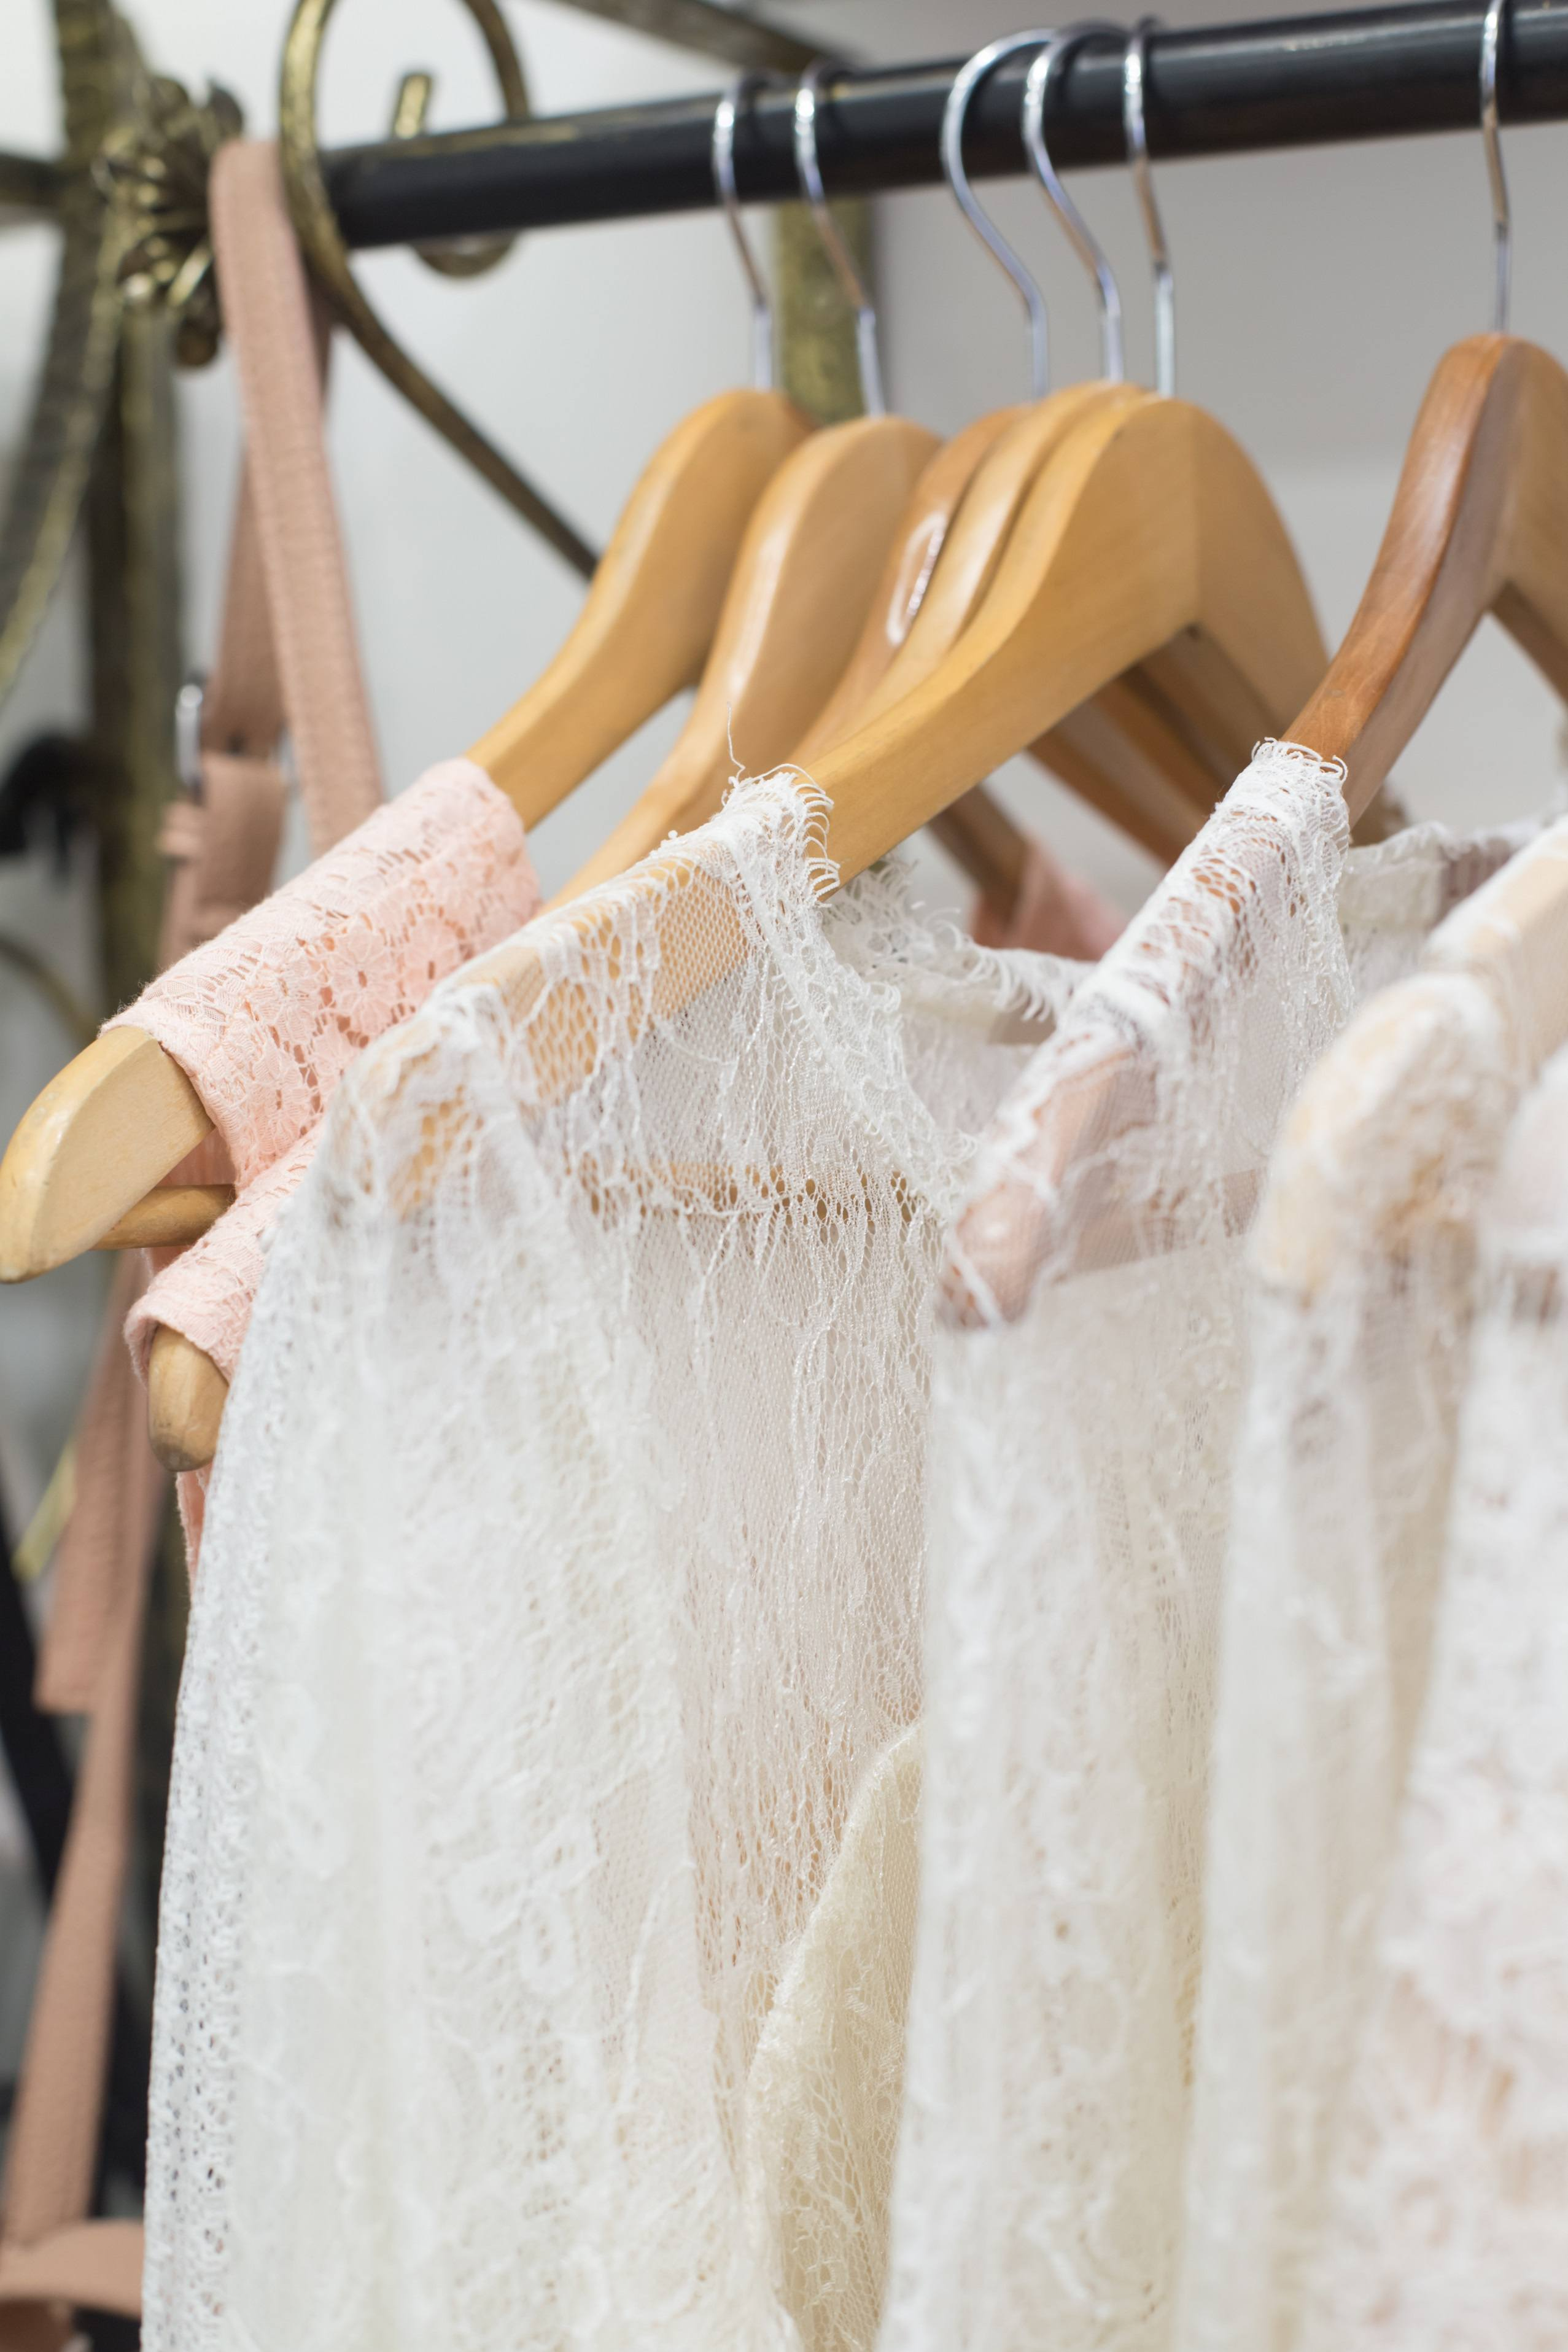 White lace blouses hanging